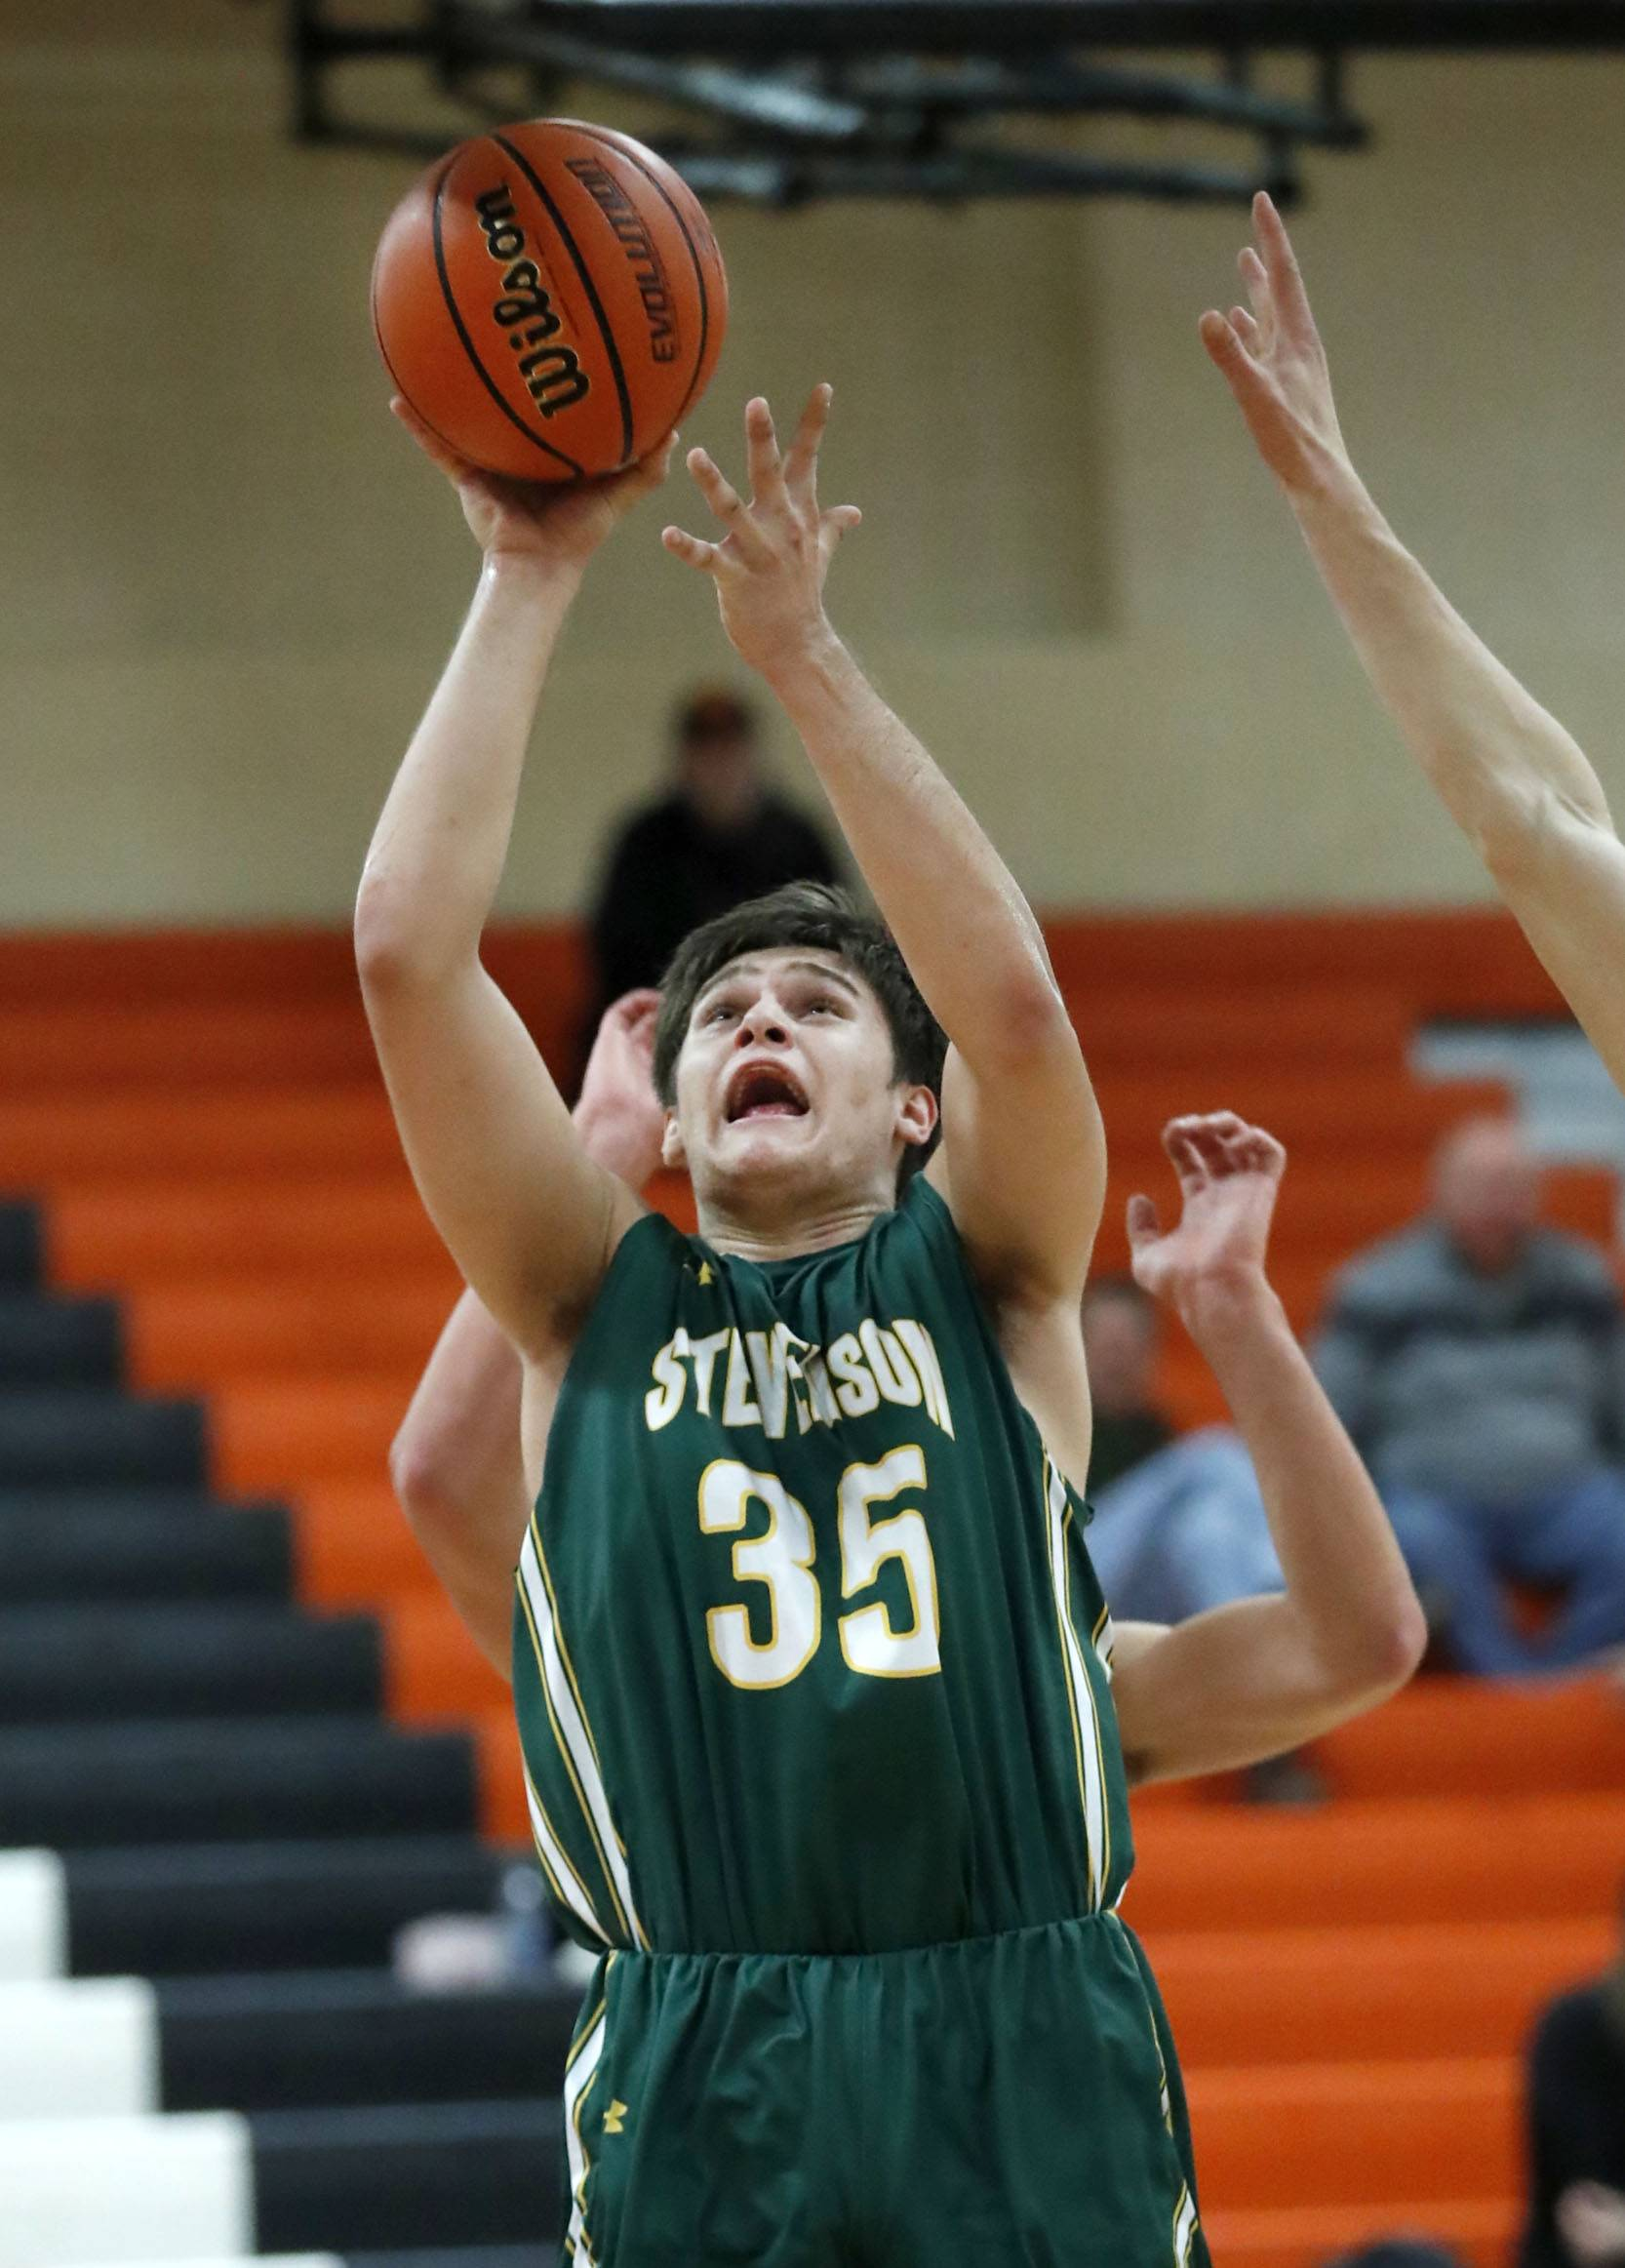 Stevenson's Matthew Kaznikov shoots during their game Tuesday night in Libertyville.